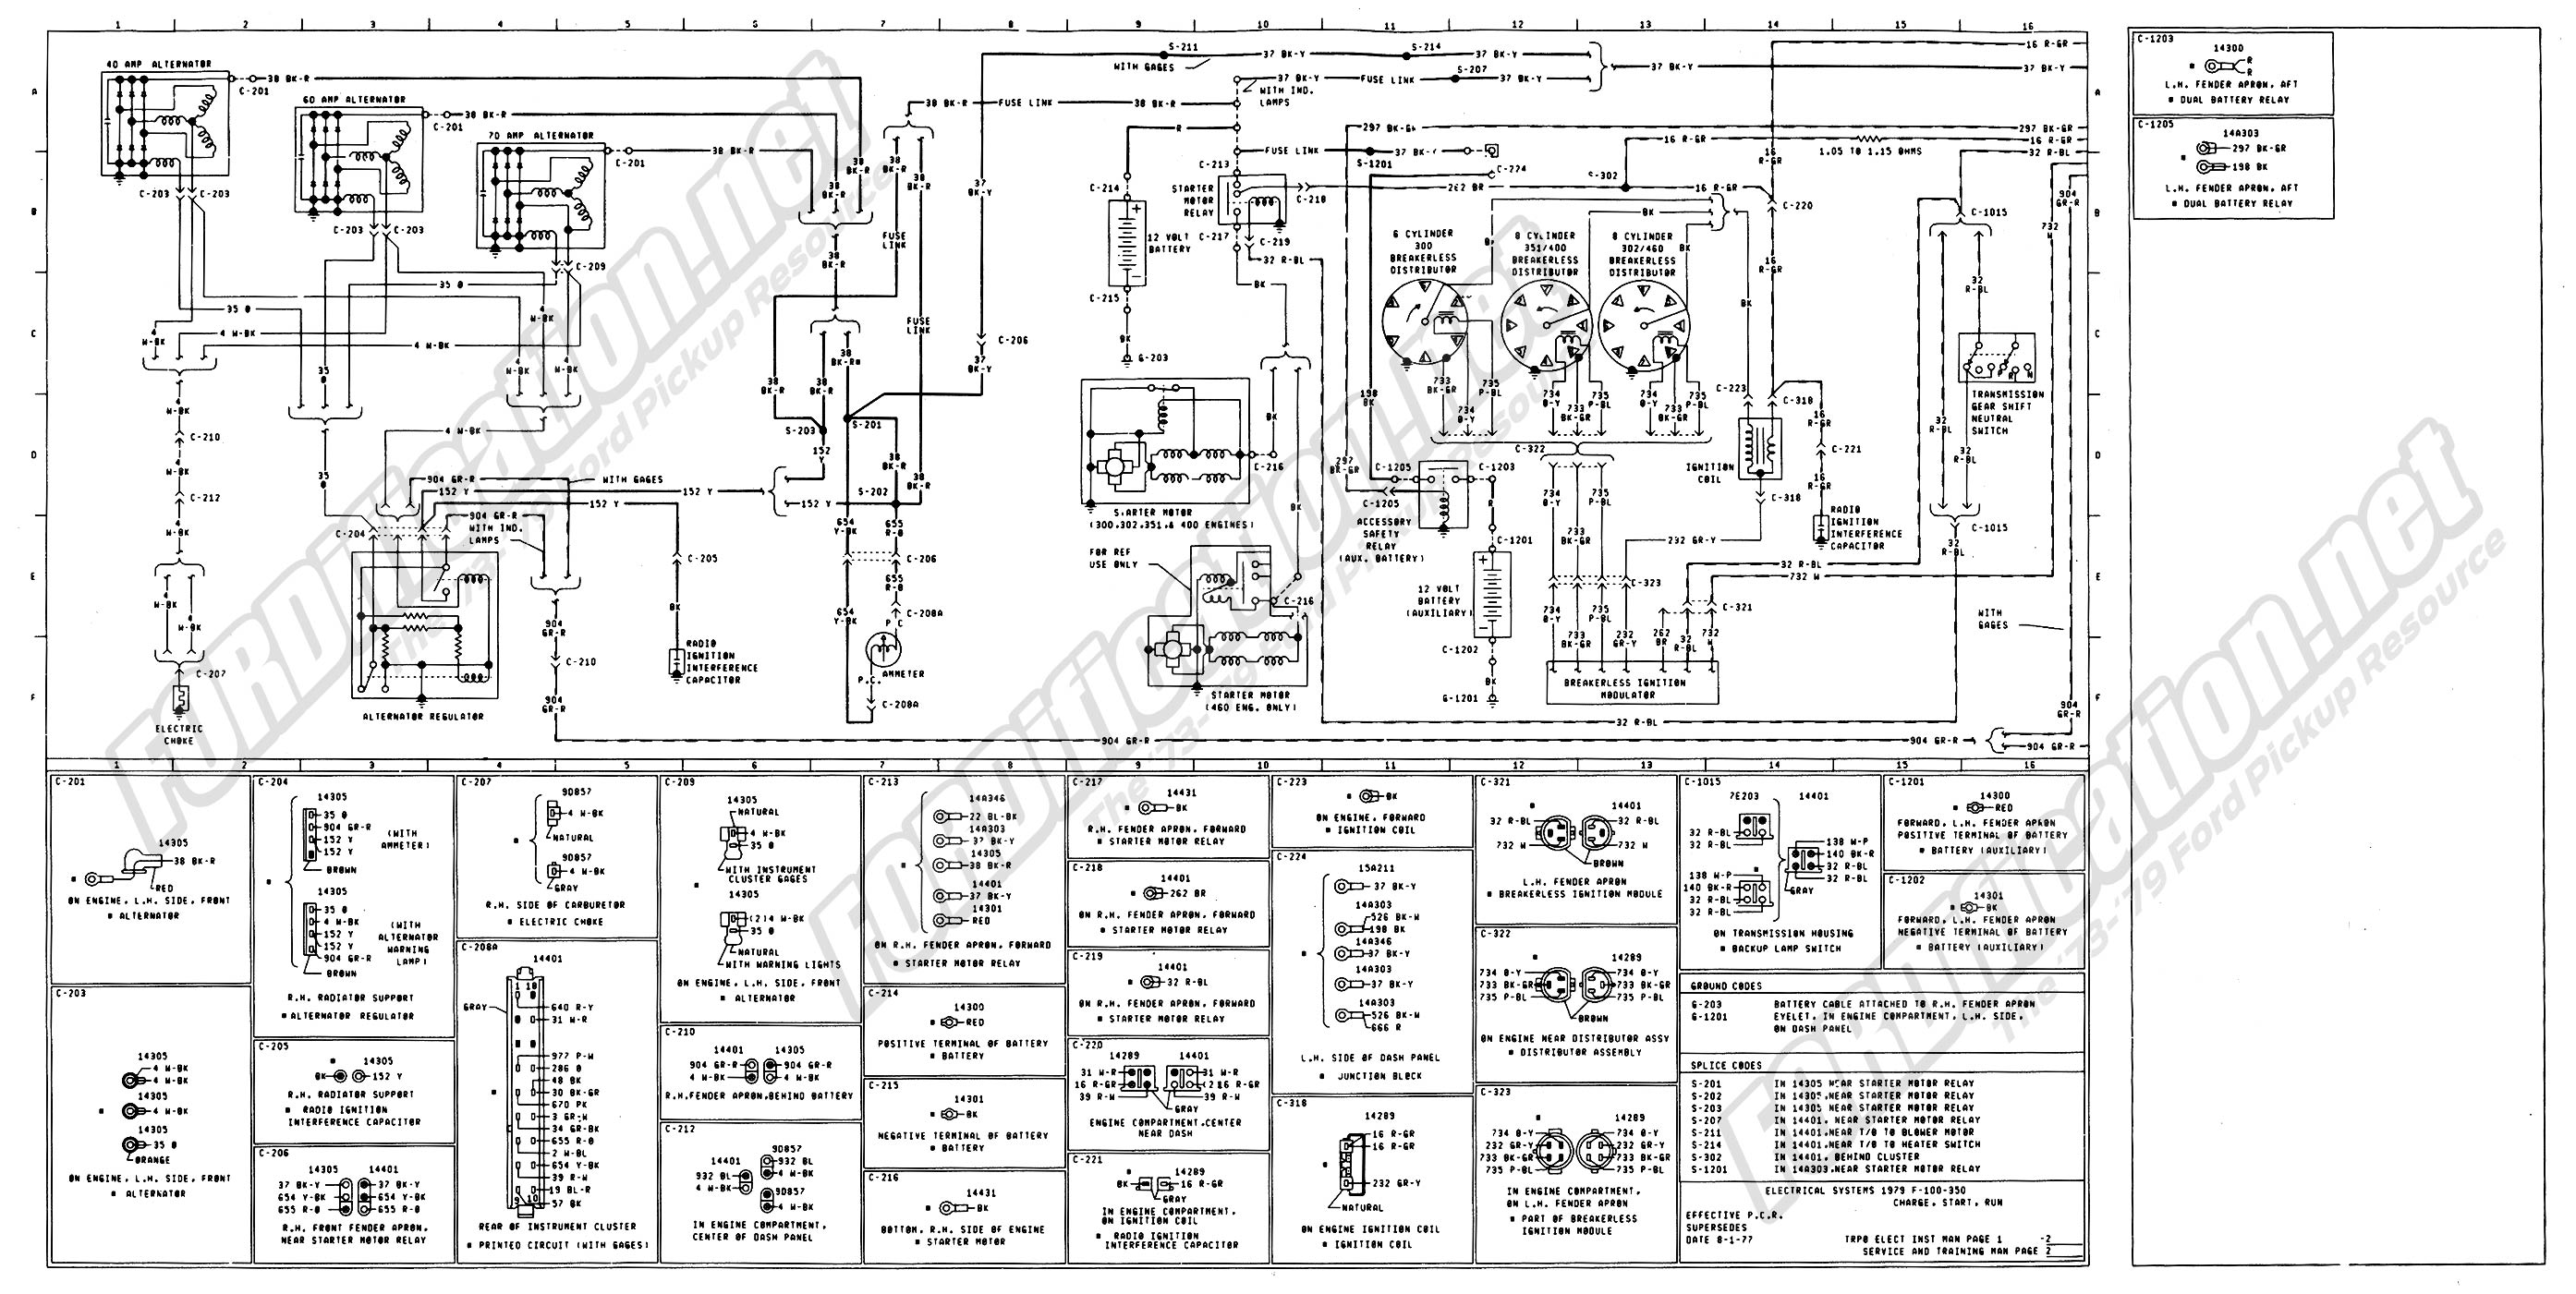 wiring_79master_2of9 1973 1979 ford truck wiring diagrams & schematics fordification net 1999 F150 Radio Wiring Diagram at alyssarenee.co